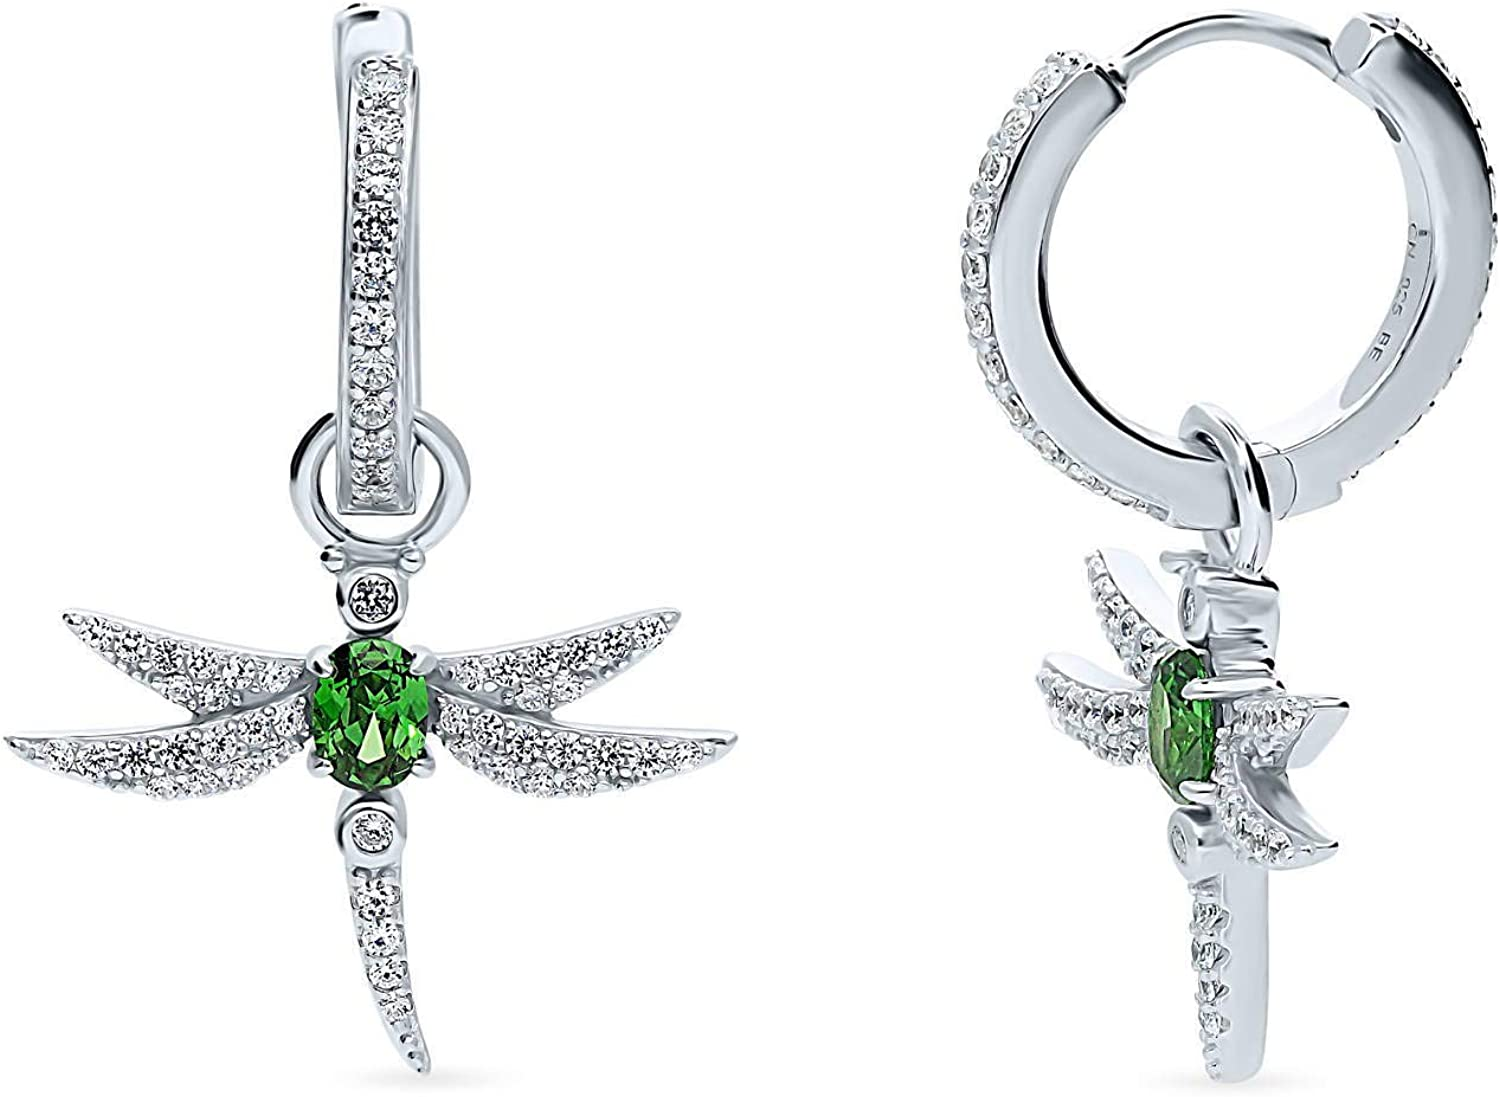 Clearance SALE Limited time BERRICLE Rhodium Plated Sterling Silver Gifts CZ Dragon Cubic Zirconia